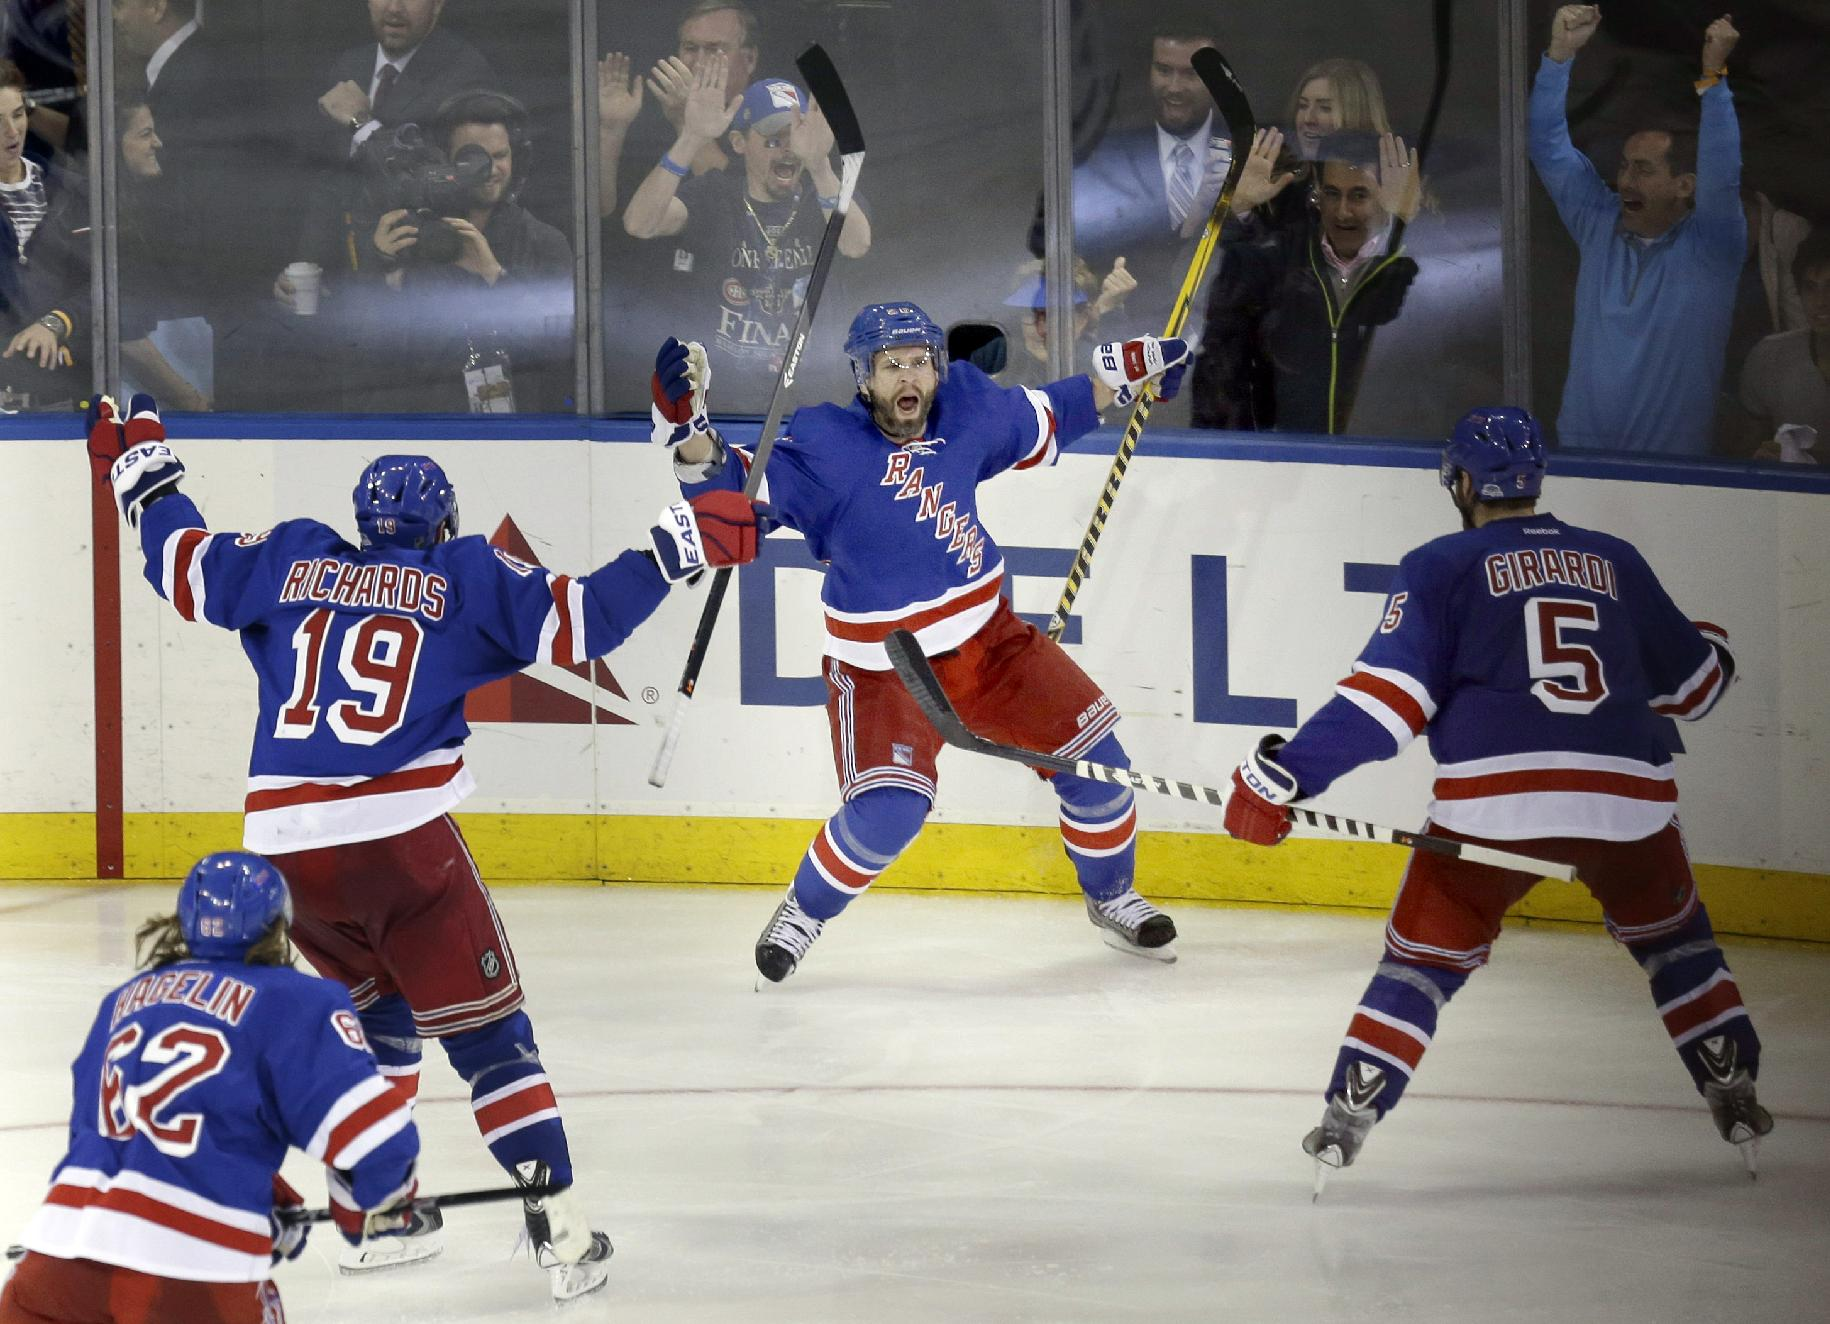 Marty St. Louis wins Game 4 in OT; Rangers take 3-1 lead on Mon…